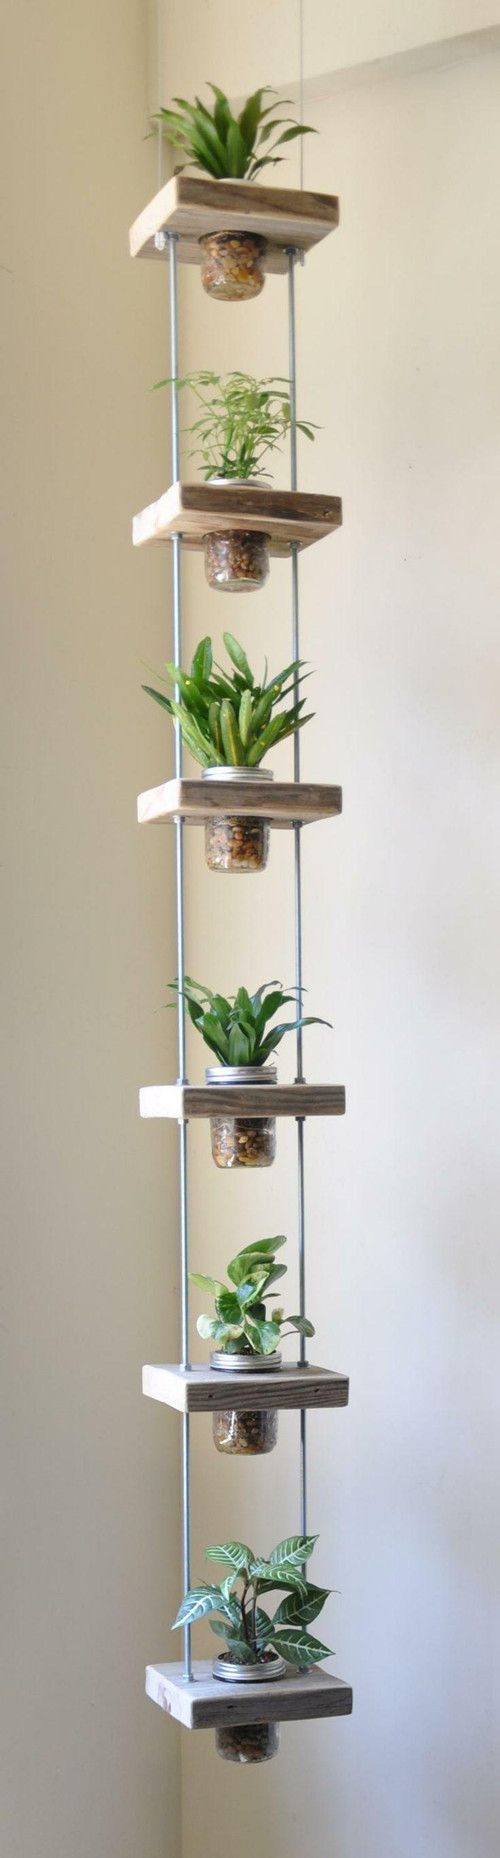 Vertical garden or hanging planter - SaiFou Beautiful!: